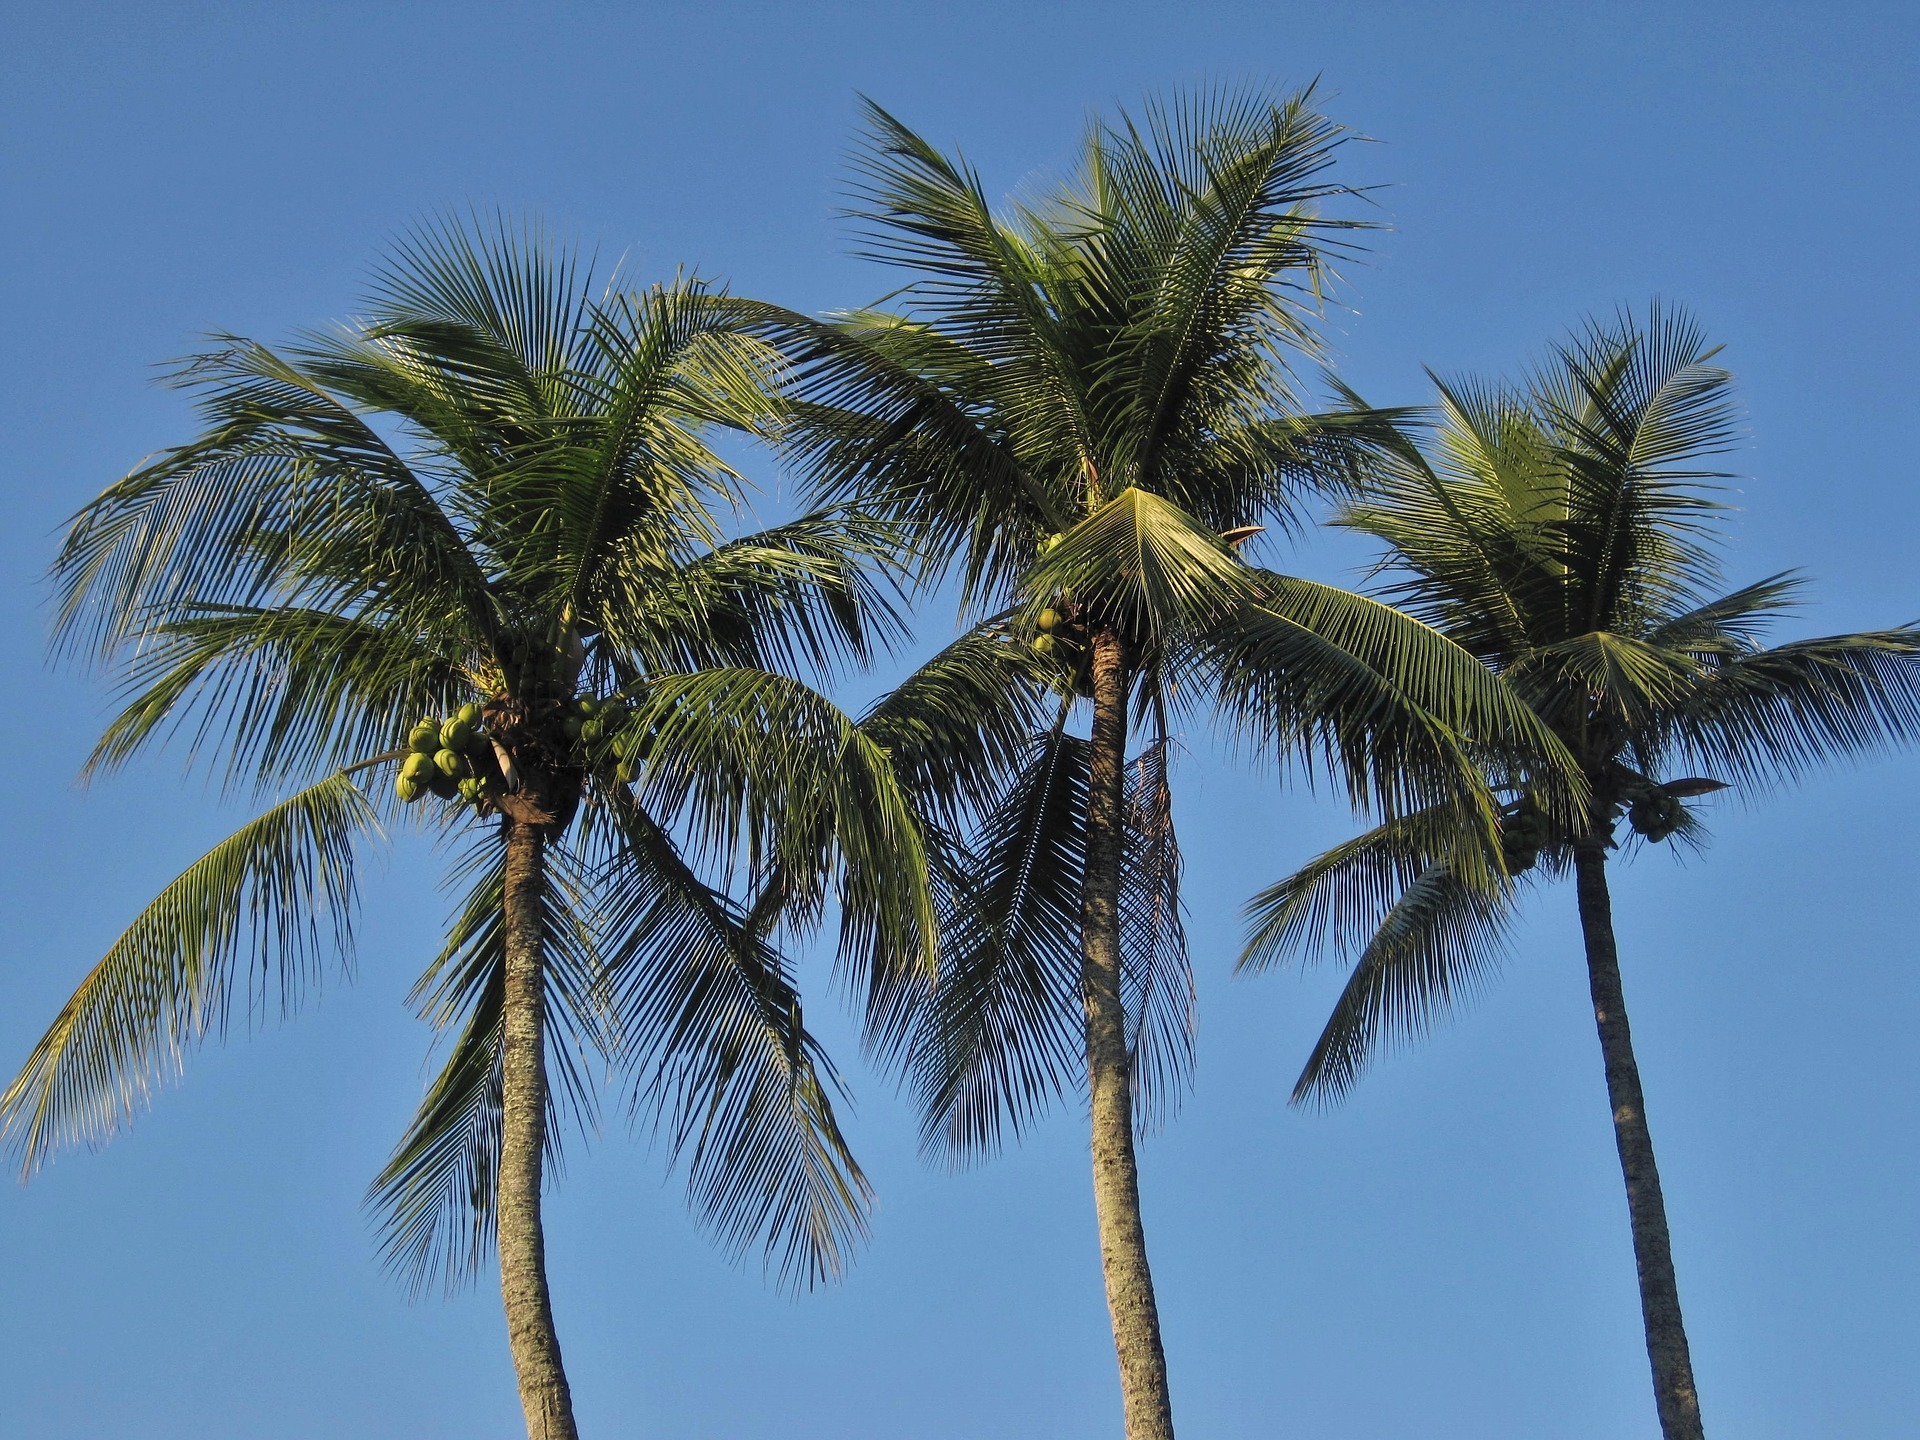 royal-palms-1225858_1920